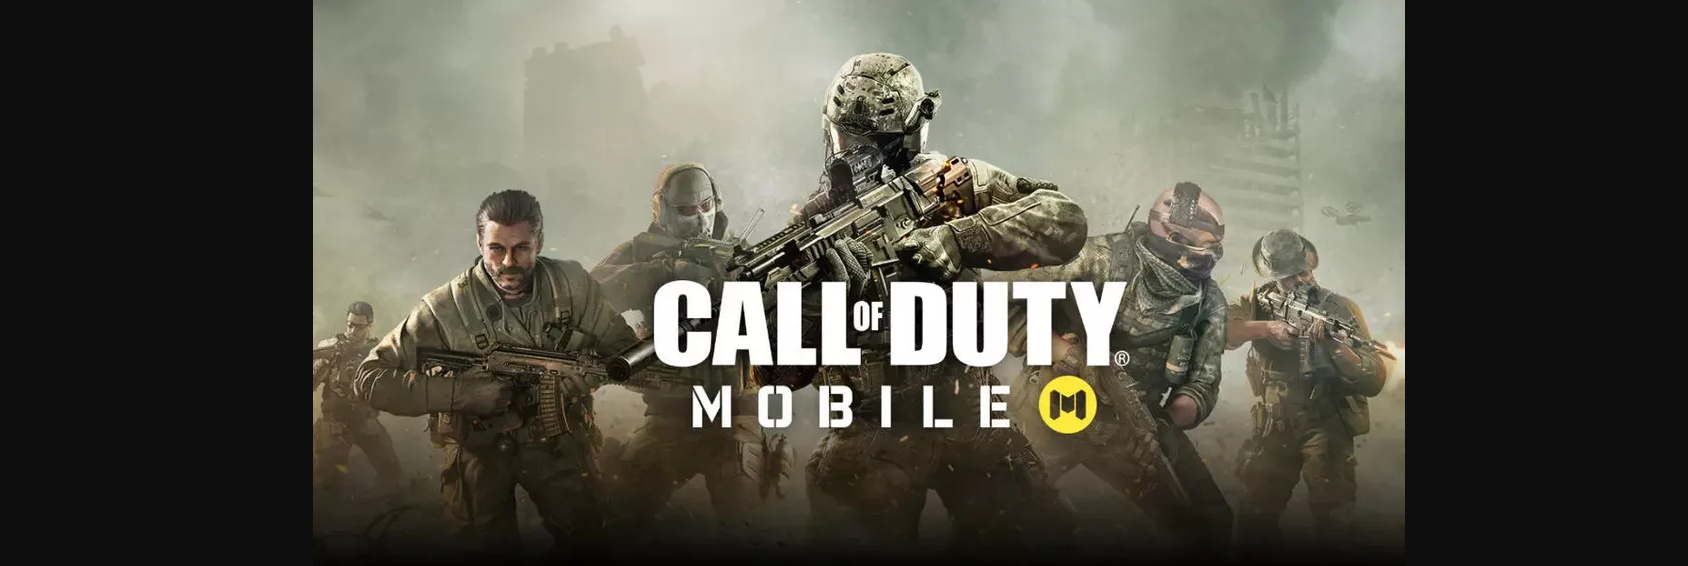 Call Of Duty: Mobile sistem gereksinimleri